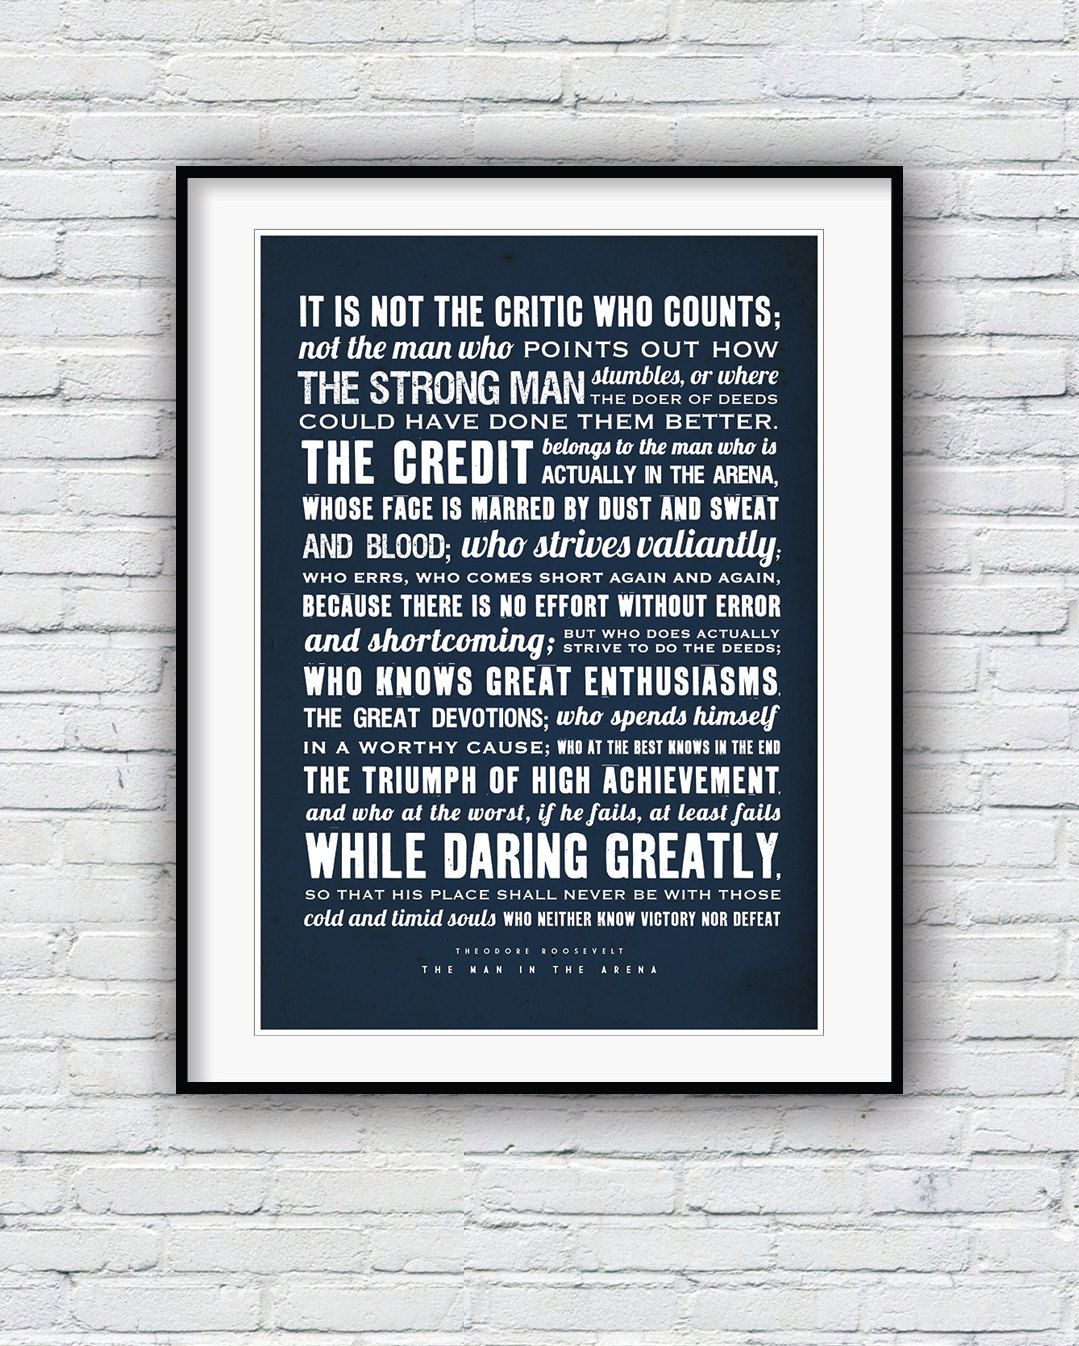 Theodore Roosevelt, The Man in the Arena, Quote poster, Typographic print, American